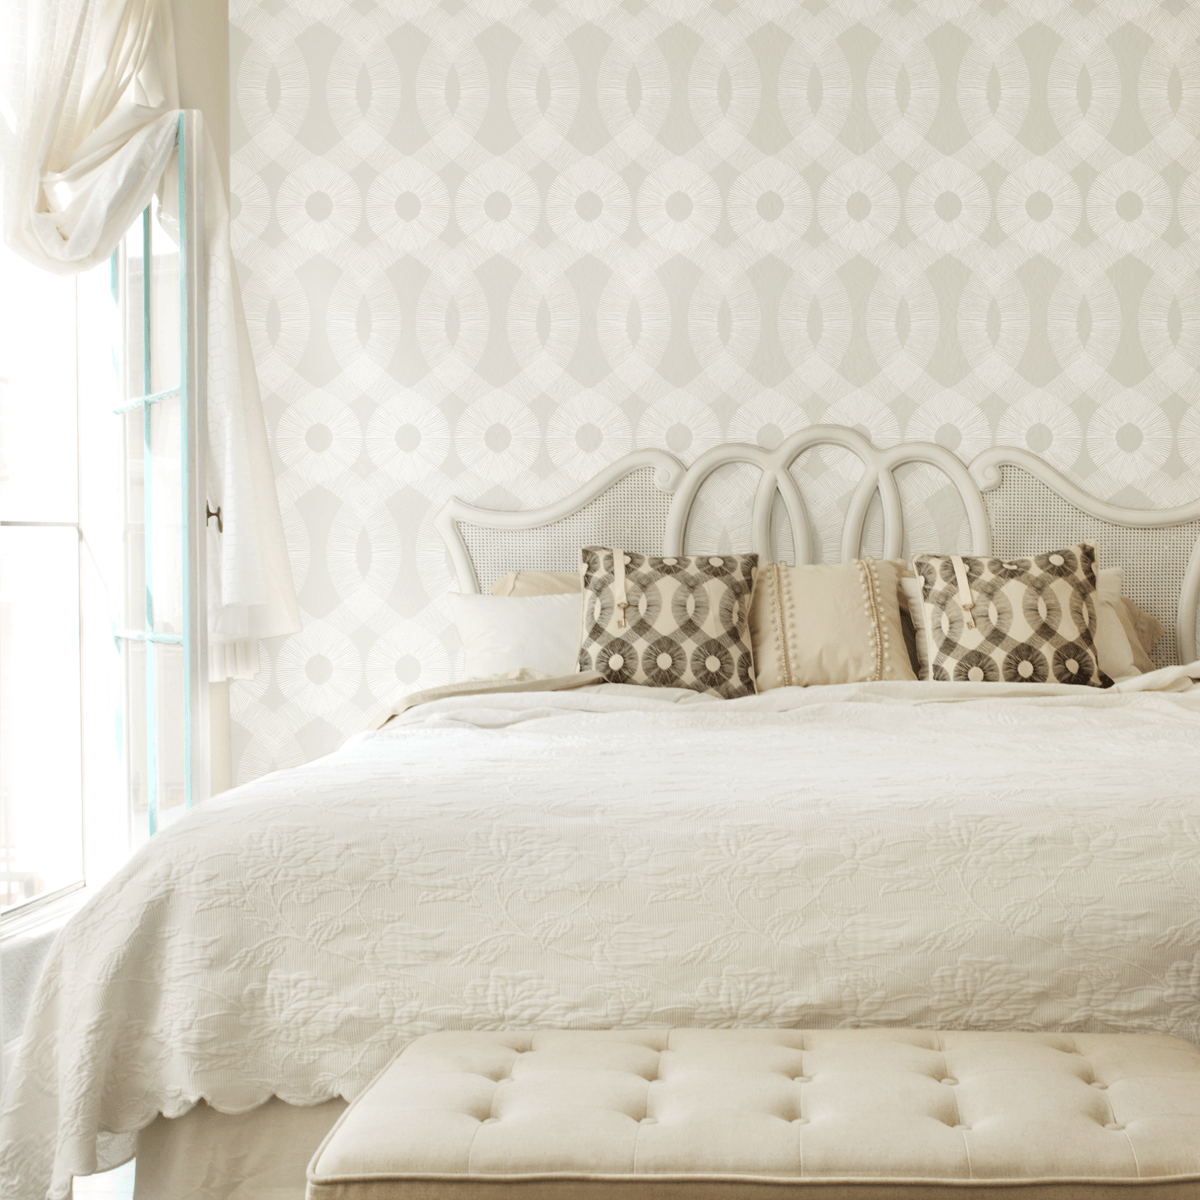 Elegant Bedroom Wallpaper